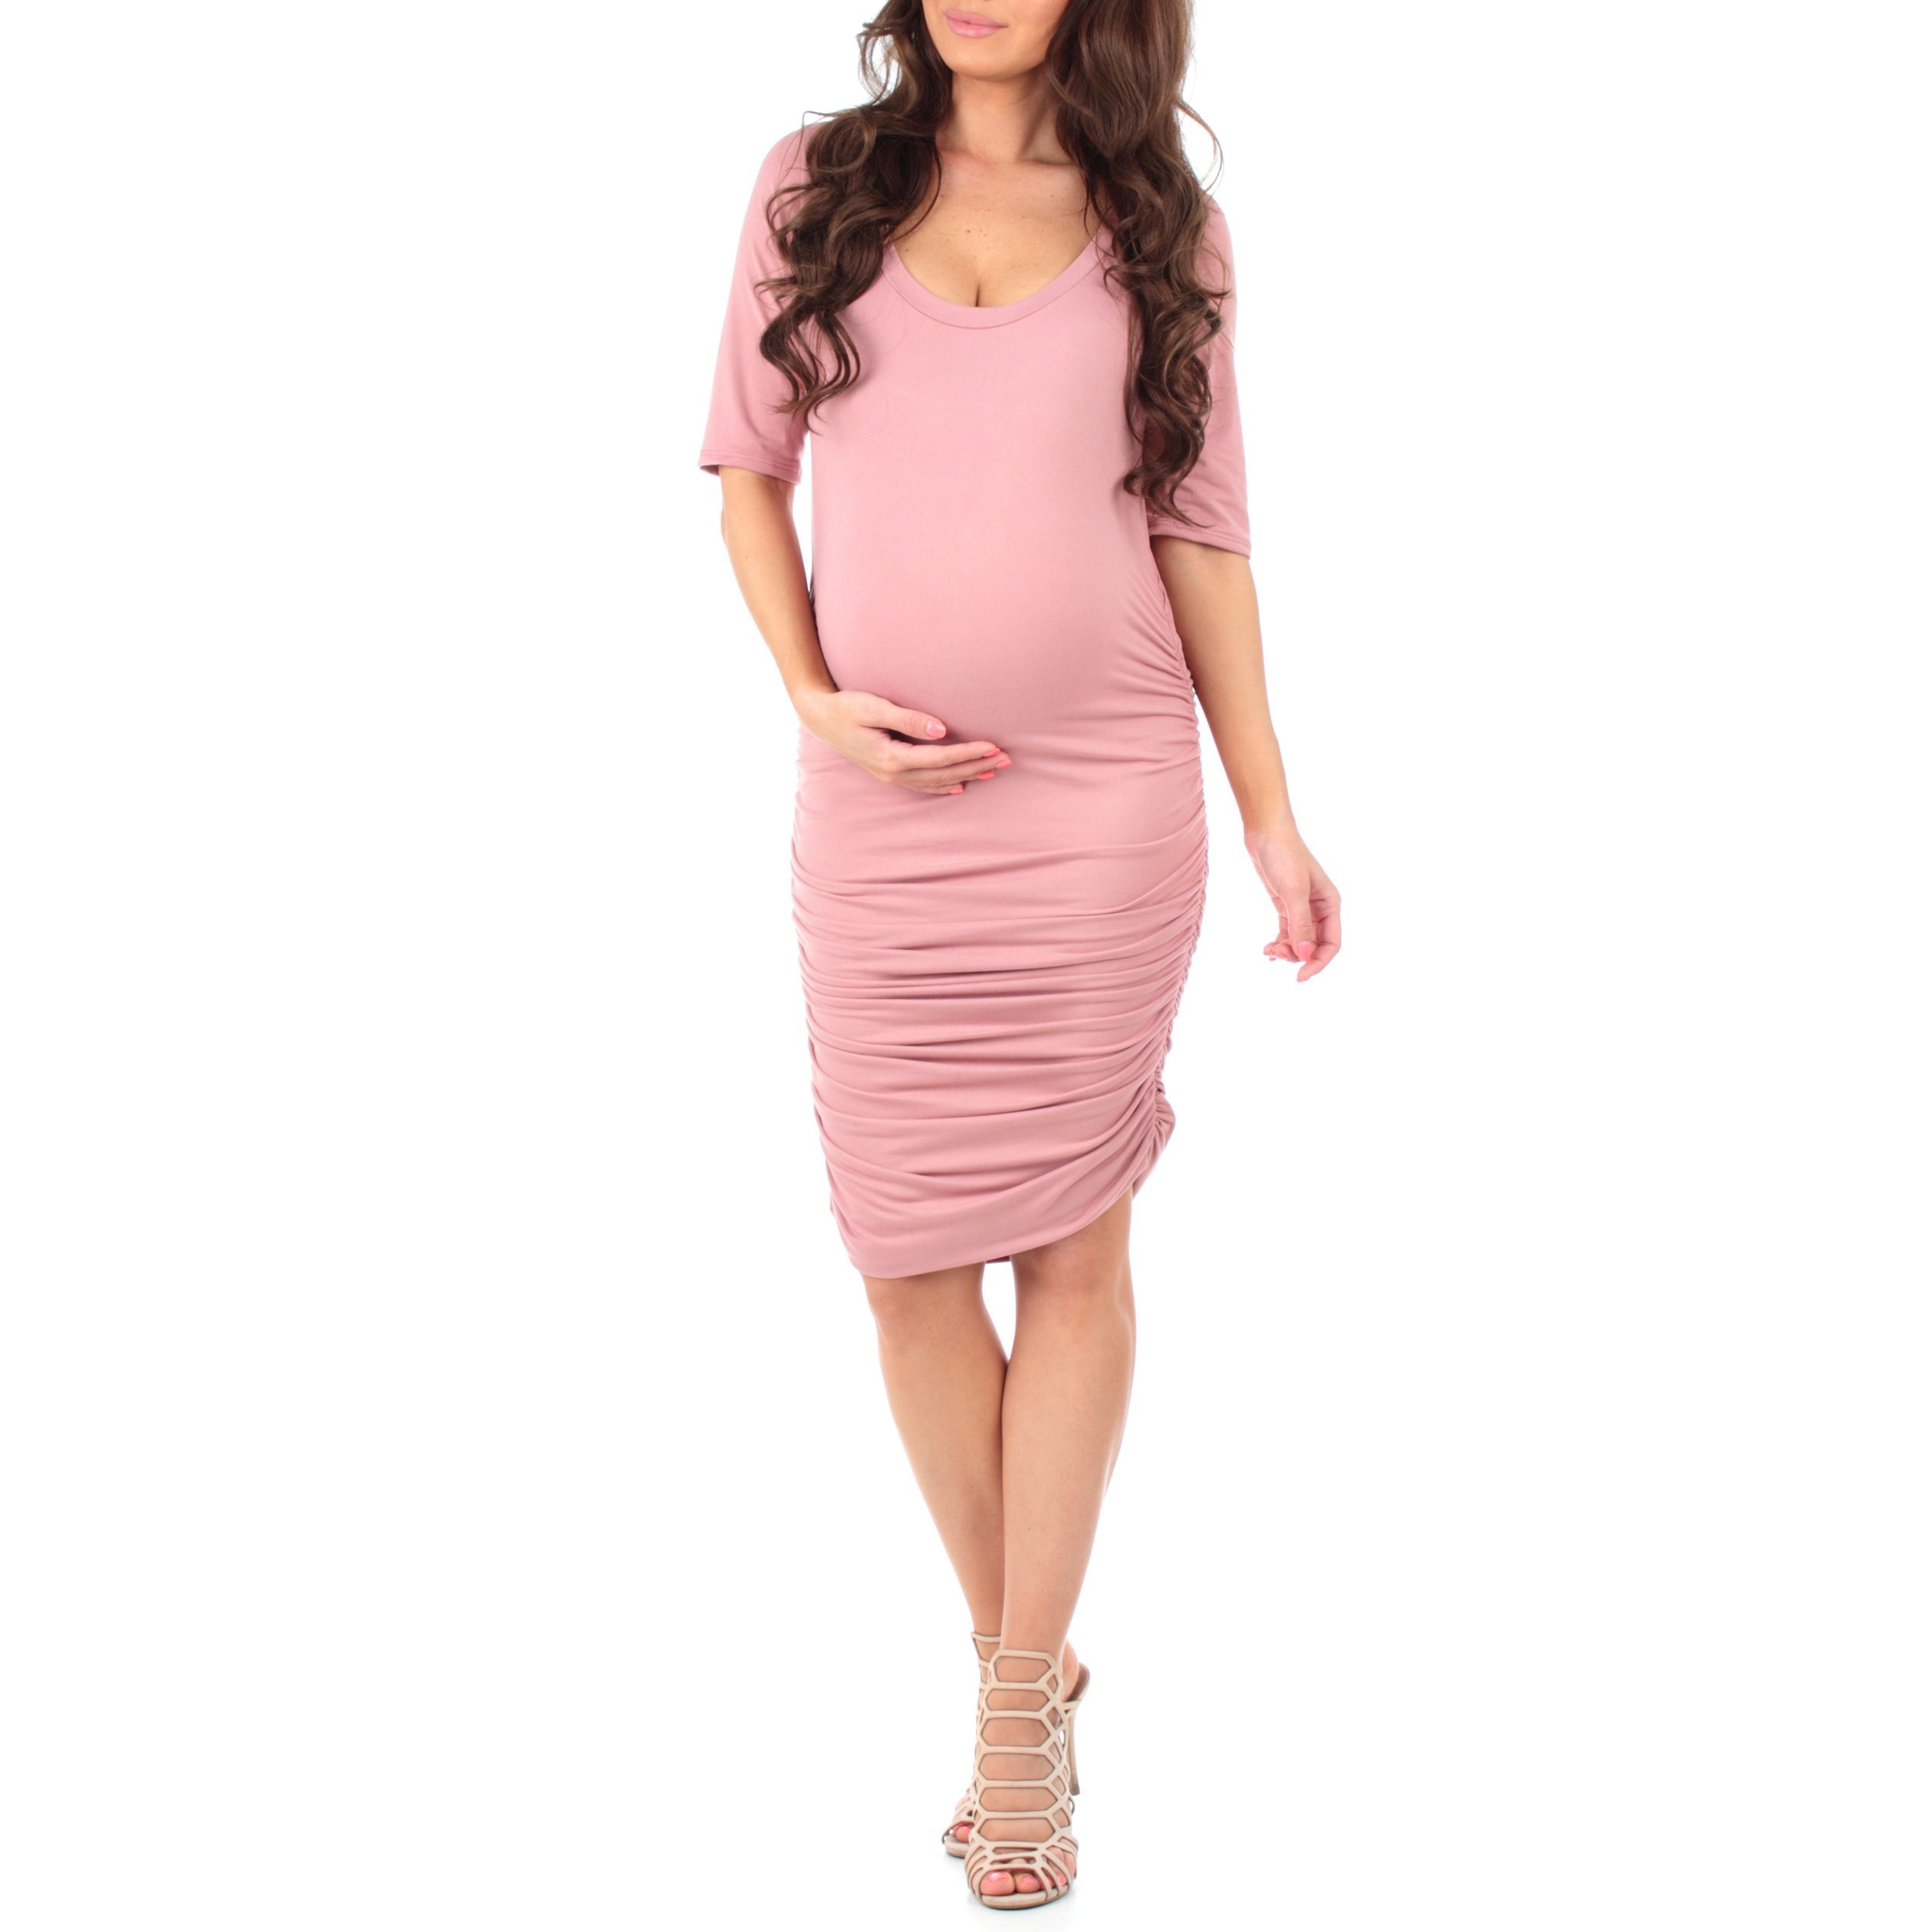 Women's Super Soft Side Ruched Maternity Dress by Mother Bee Mauvebr, Small